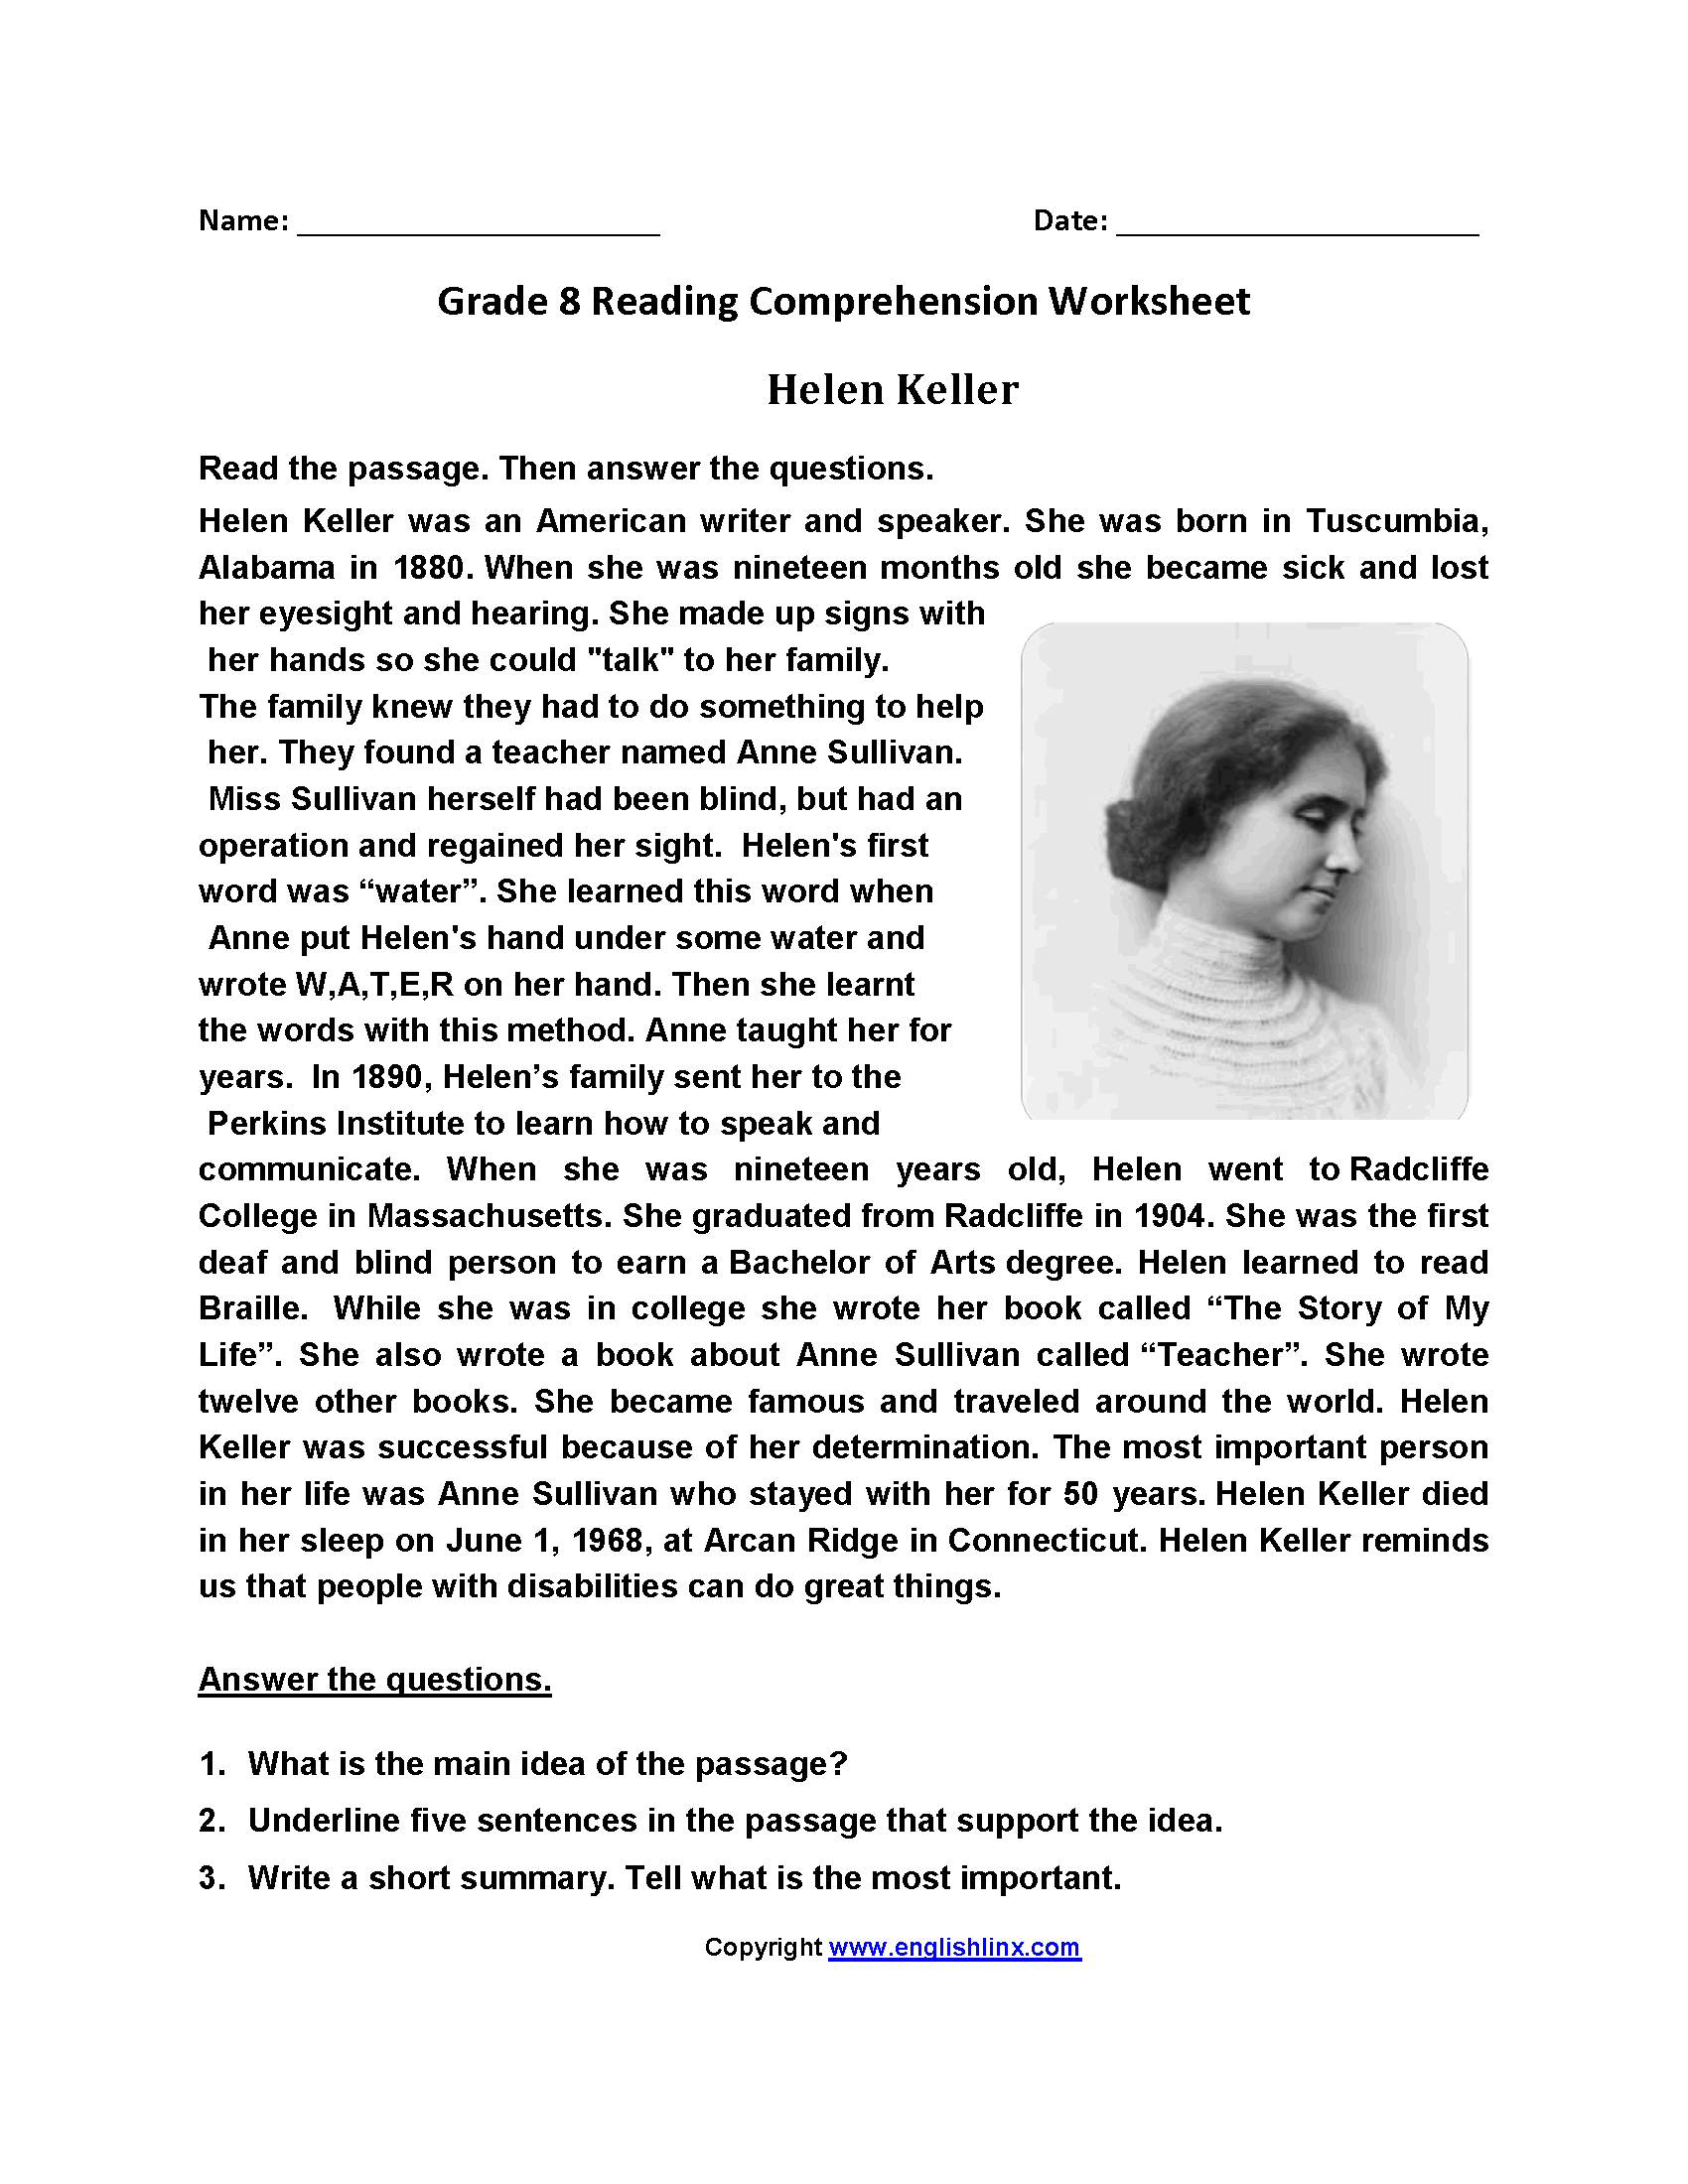 Worksheets 8th Grade Reading Comprehension Worksheets reading worksheets eighth grade worksheets